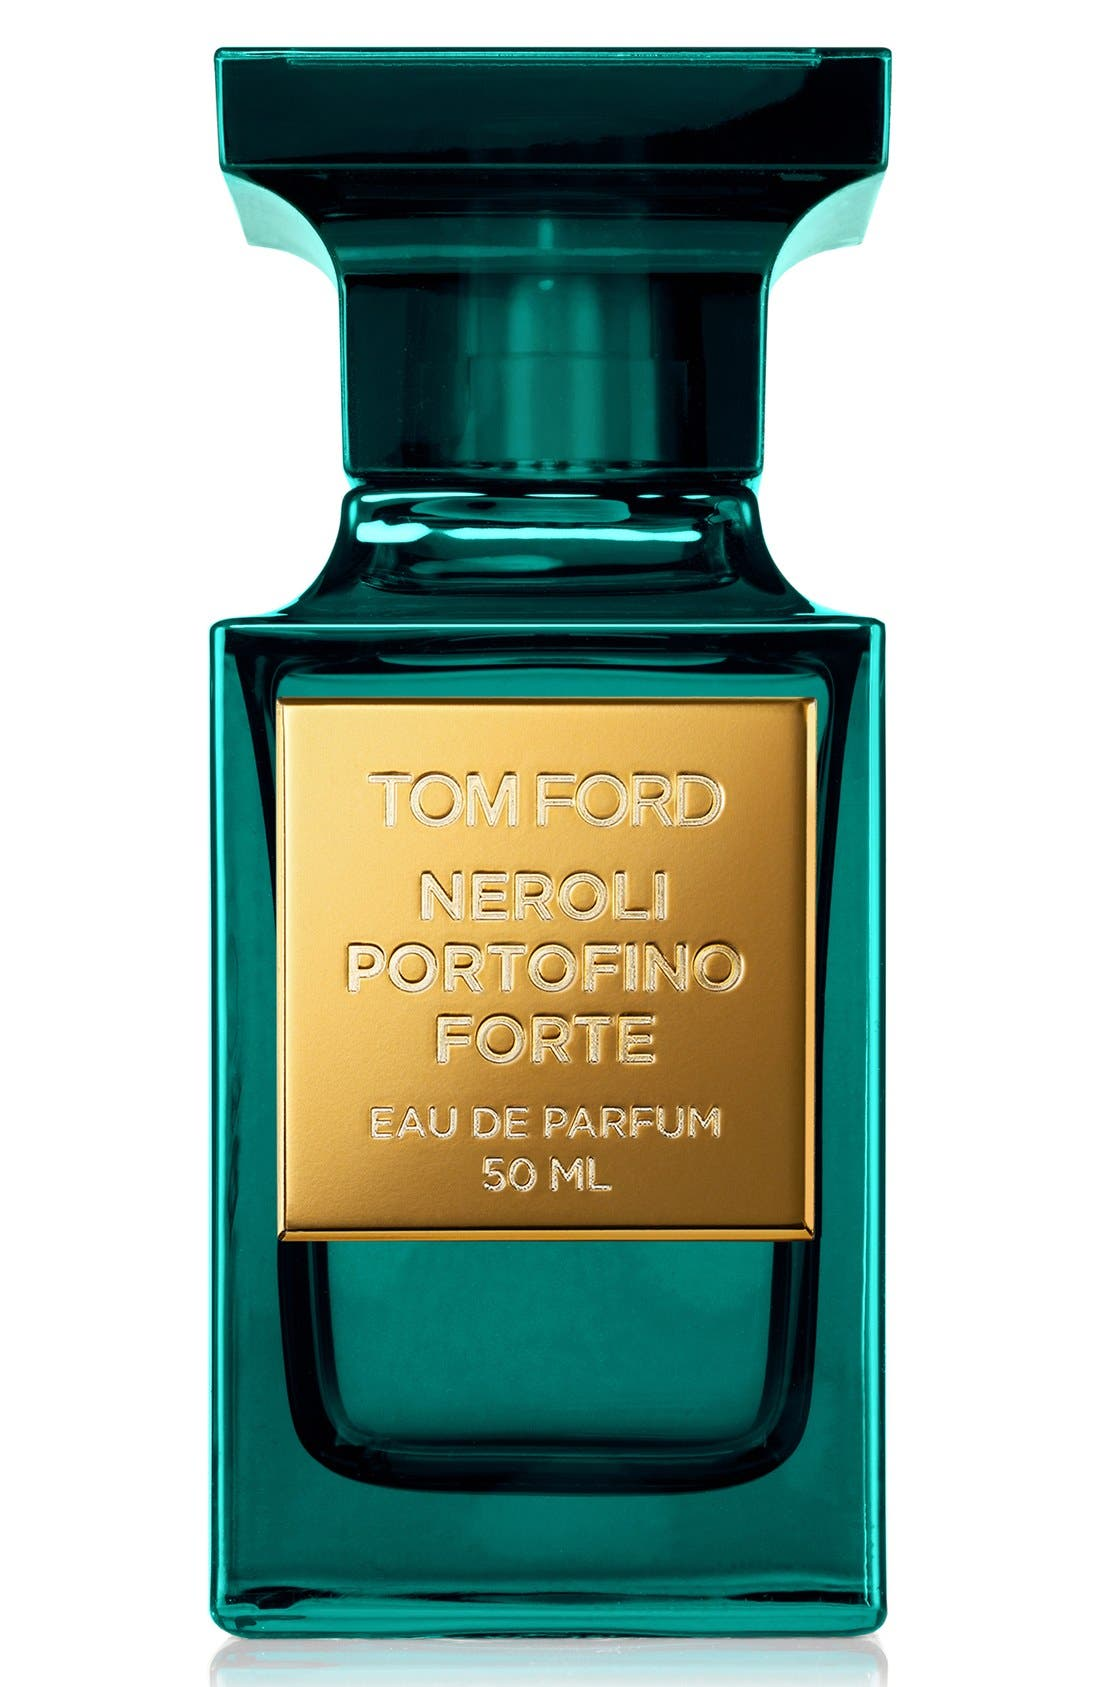 Tom Ford Private Blend 'Neroli Portofino Forte' Eau de Parfum